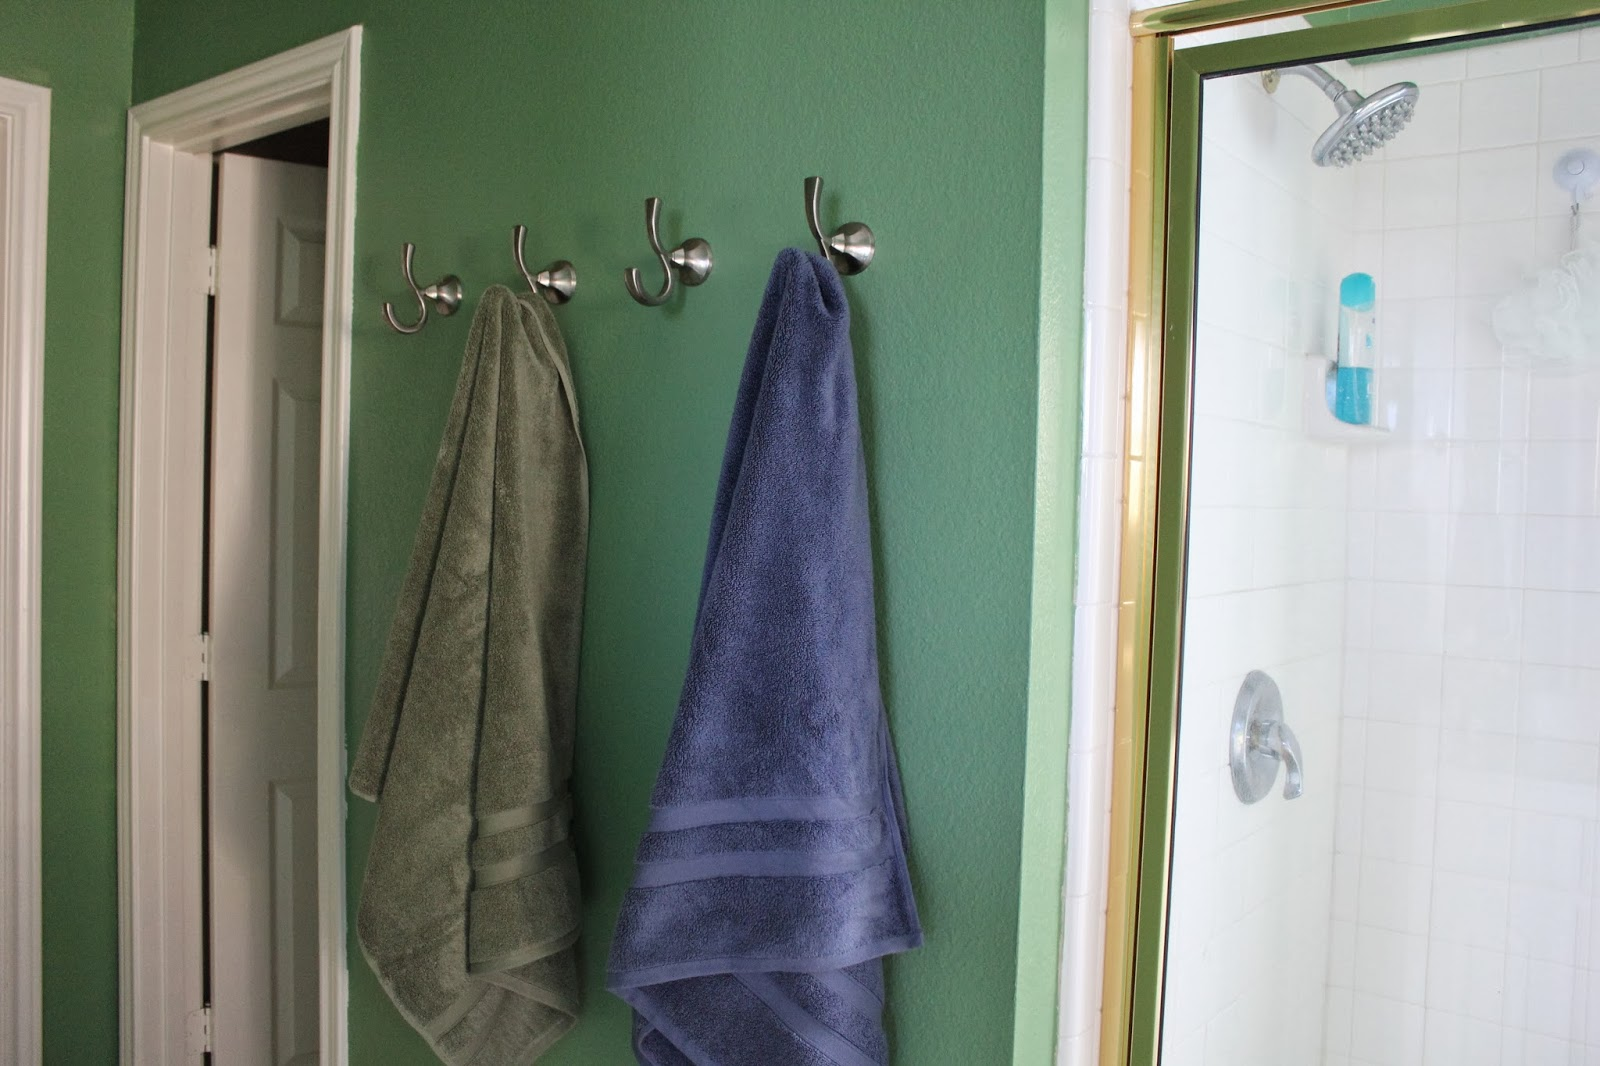 Awesome Bathroom Decor Using Stainless Steel Wall Hook Rack and Tosca Paint